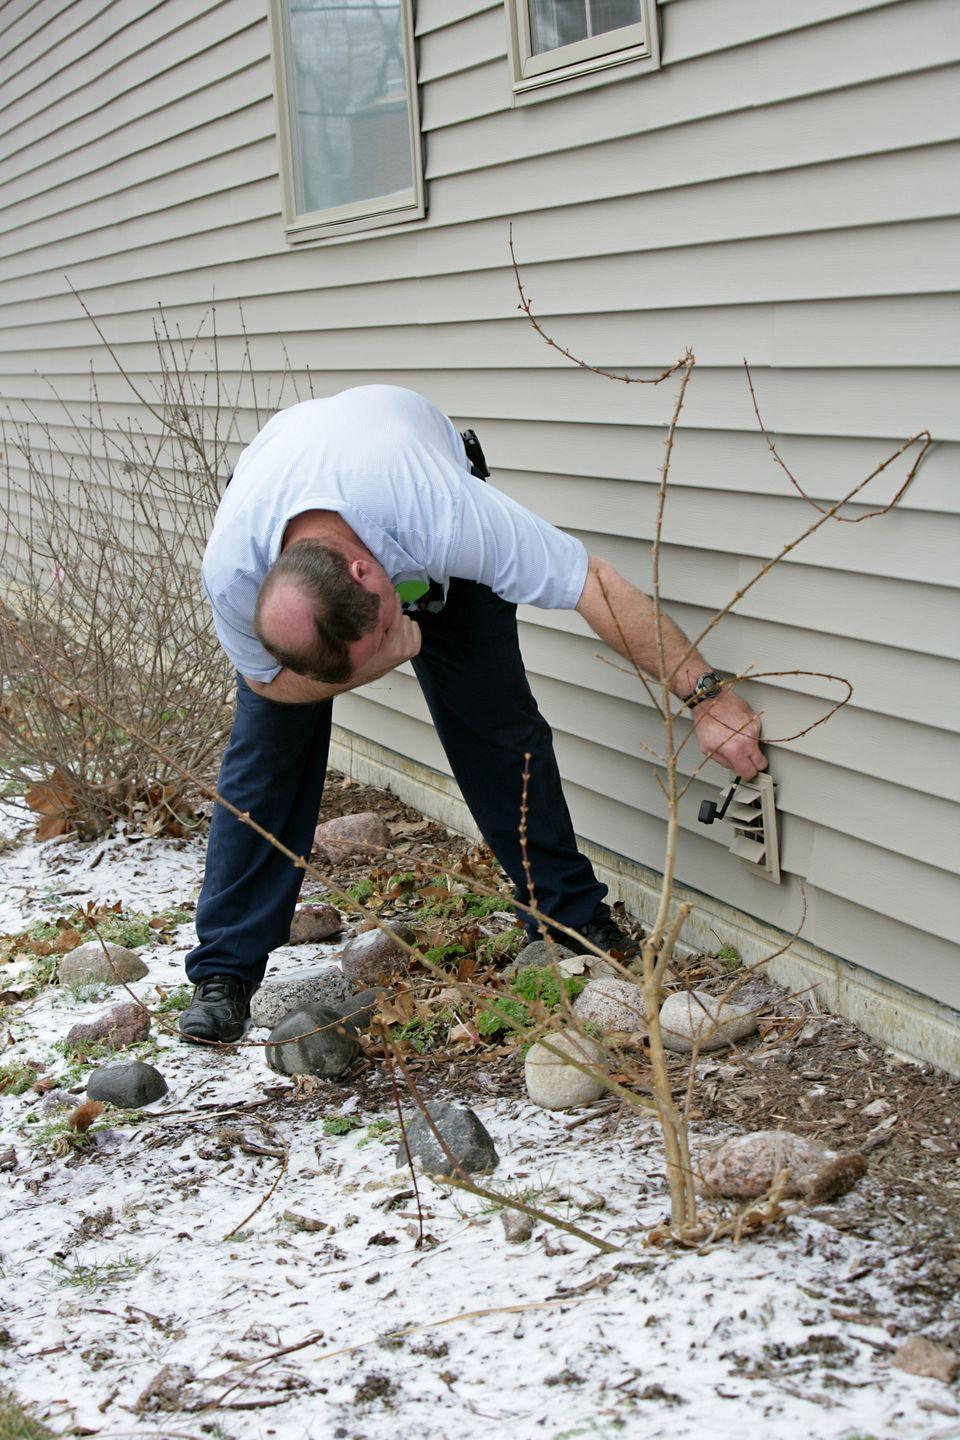 "<p>Take a walk around your property and make note of anything that could cause a problem this winter. ""Make sure your gutters are clear, and look for missing, cracked, or damaged roof tiles, as well as missing caulk around your windows and doors, or new cracks in the foundation,"" says Cristina Miguelez, a remodeling specialist at <a href=""https://www.fixr.com/"" rel=""nofollow noopener"" target=""_blank"" data-ylk=""slk:Fixr.com"" class=""link rapid-noclick-resp"">Fixr.com</a>, a home remodeling information website.</p>"